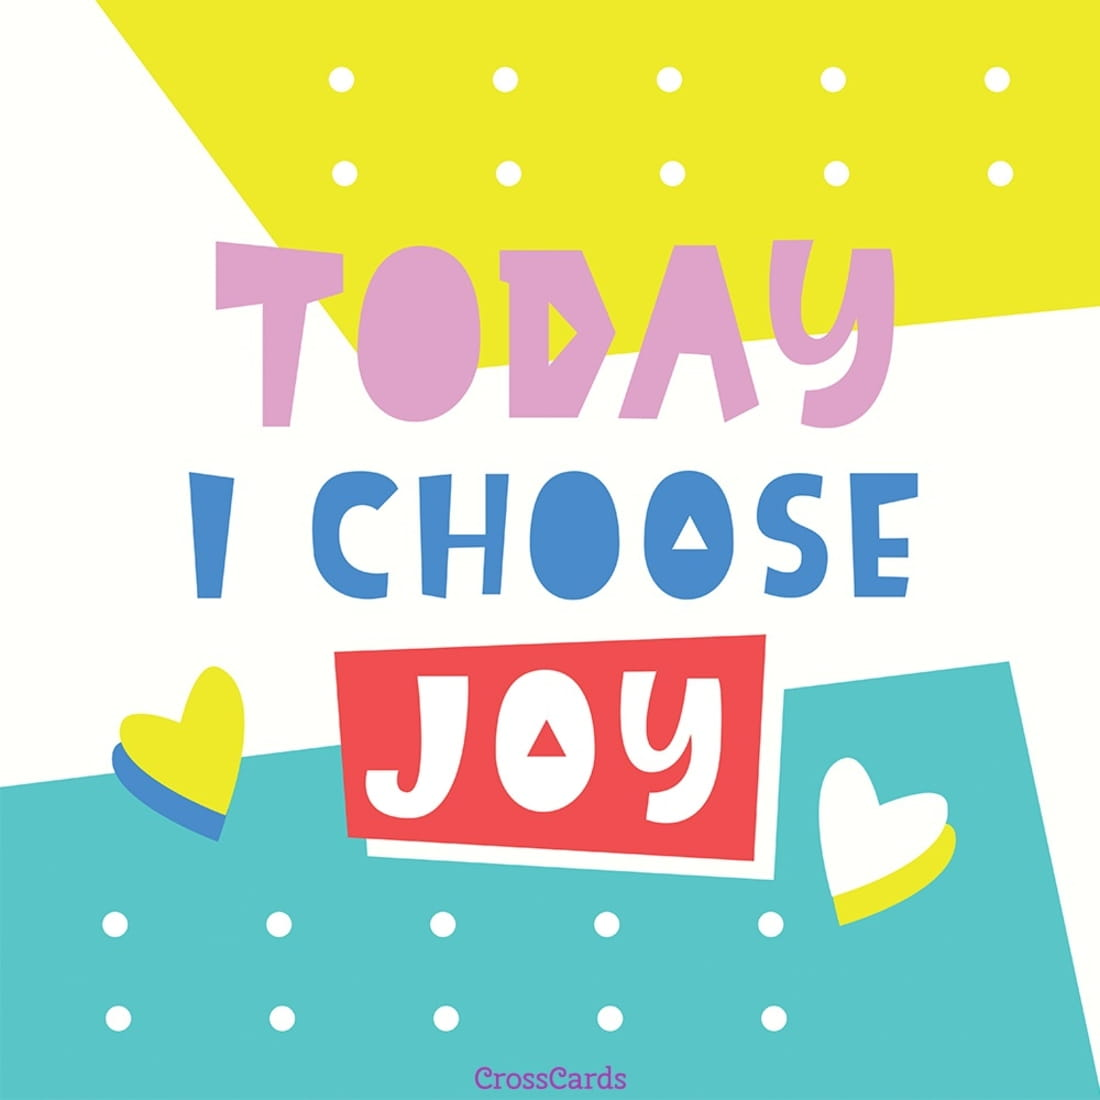 Ecards free online greeting cards updated daily choose joy ecard online card m4hsunfo